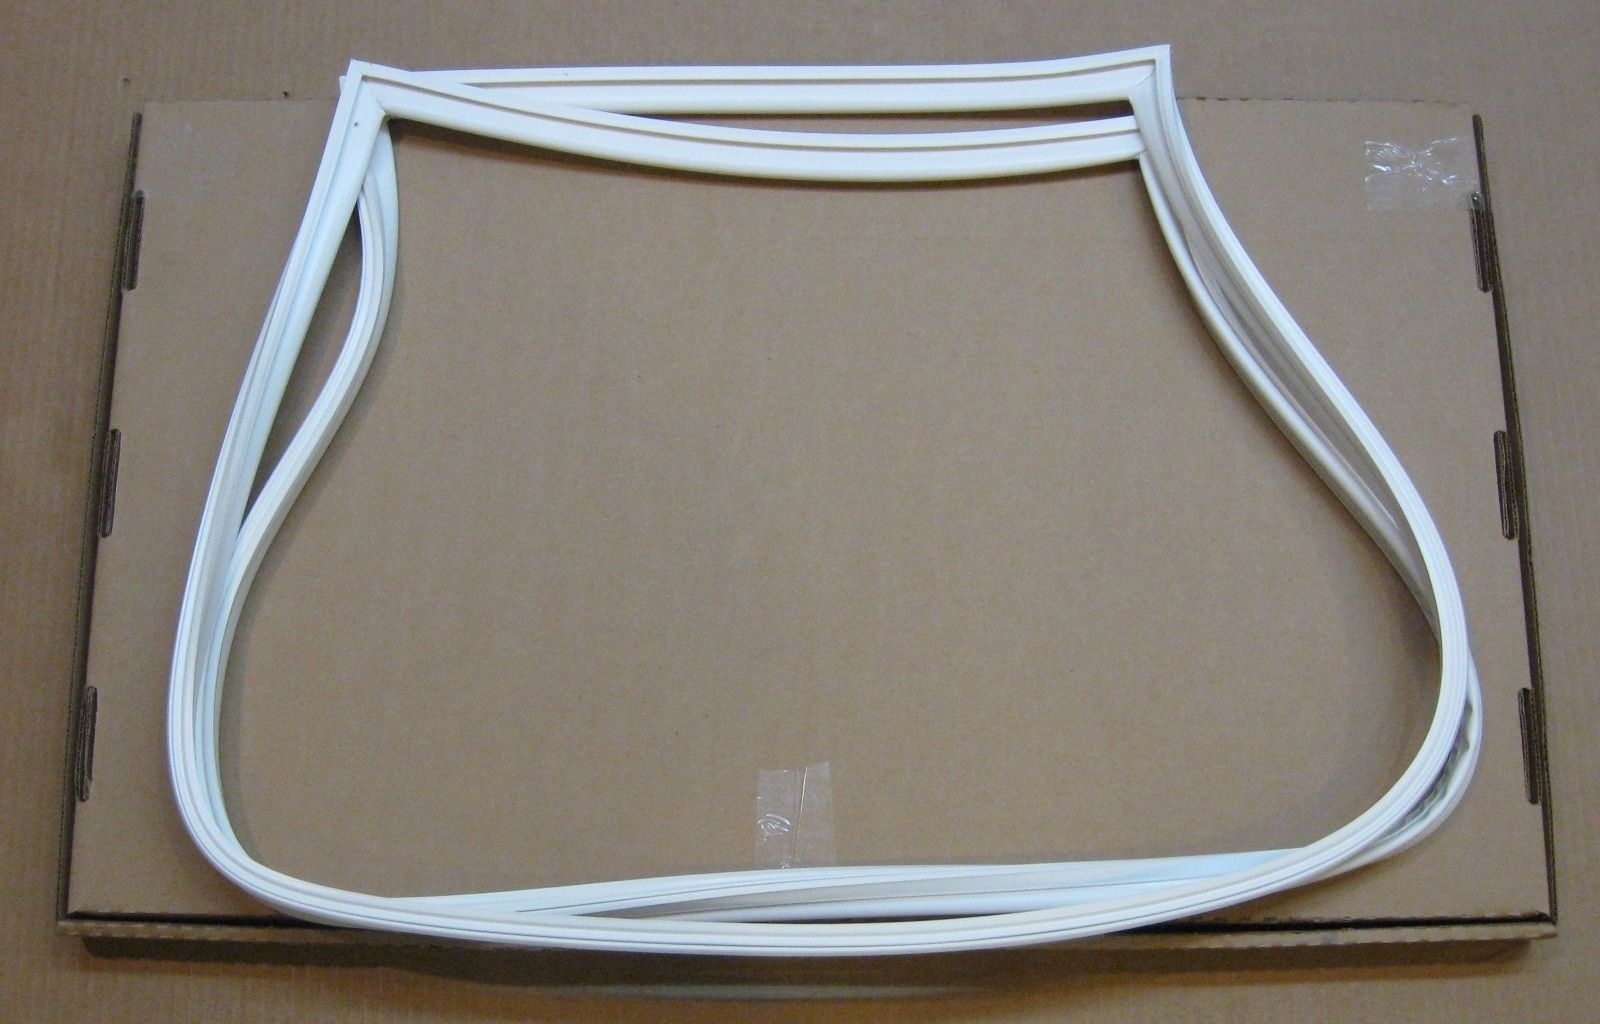 2188433a Replaces Whirlpool Refrigerator Door Gasket Seal